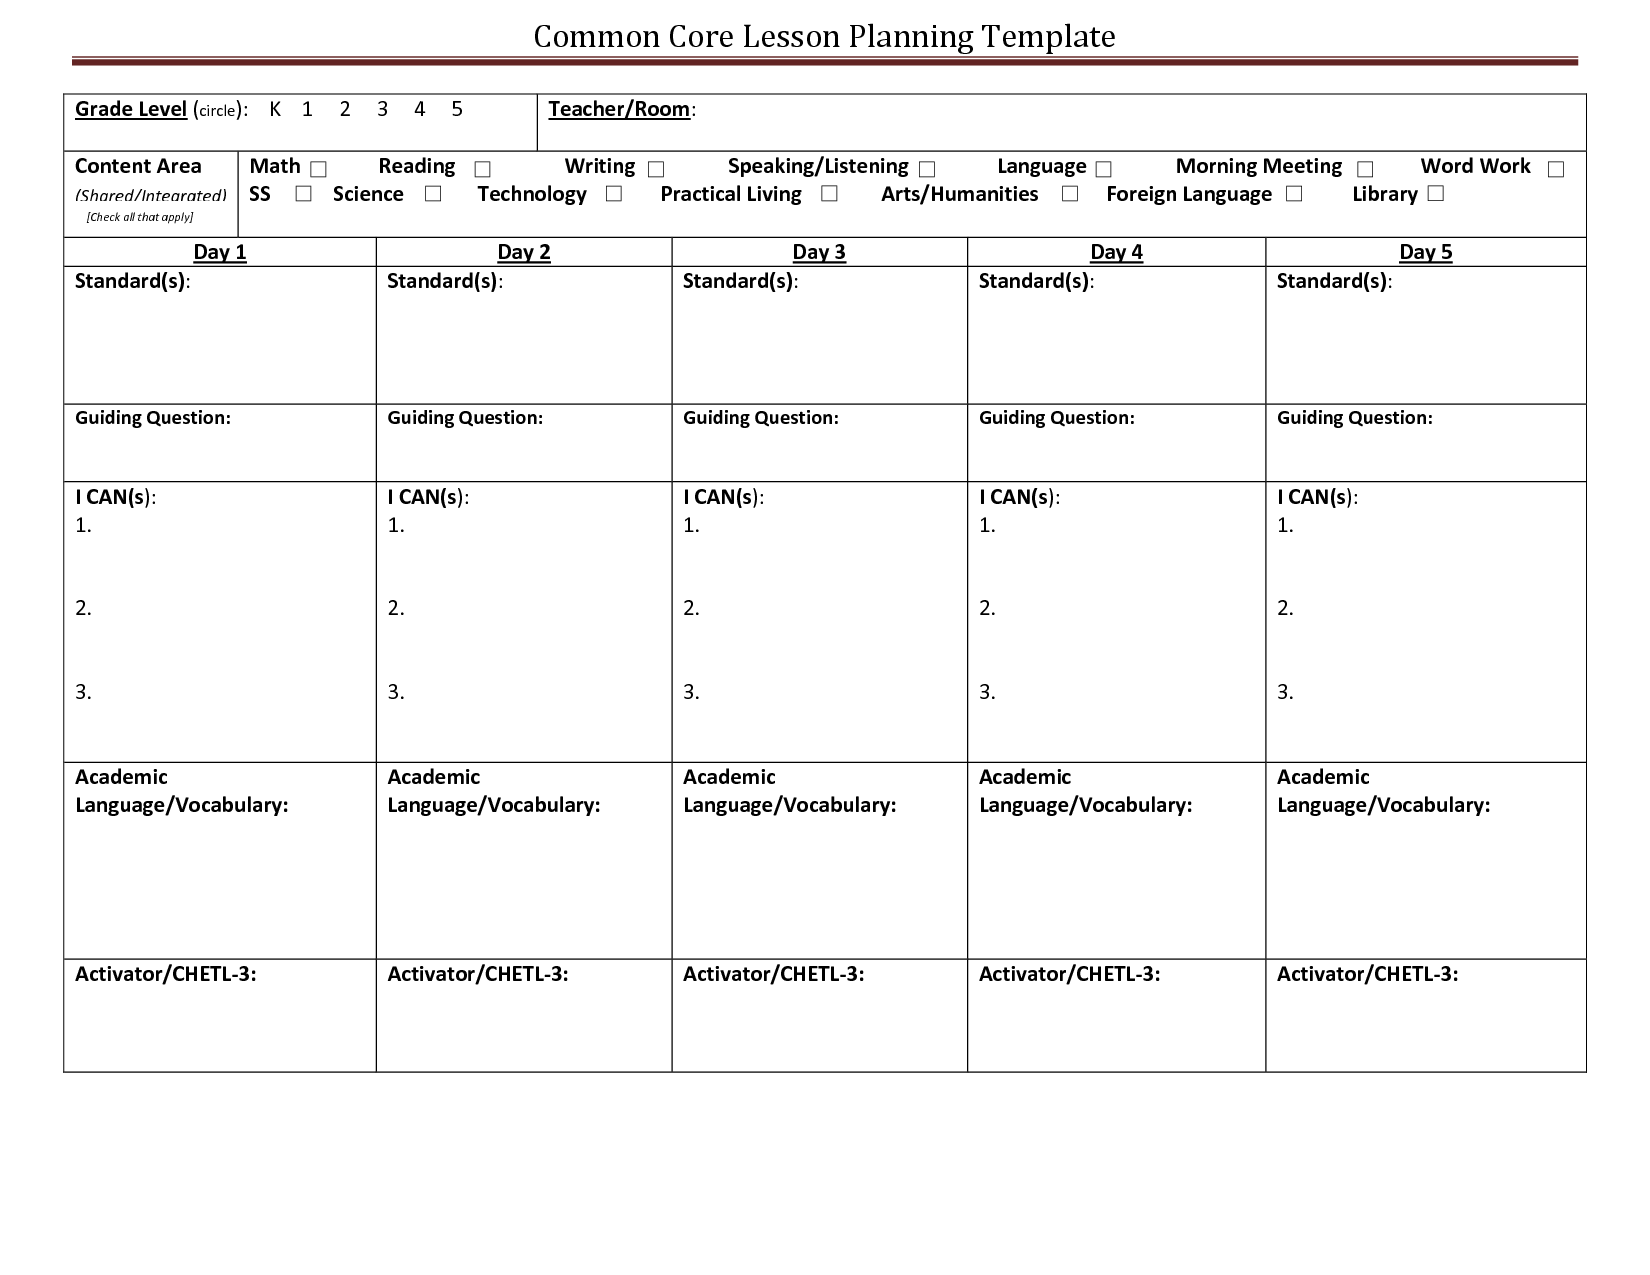 Common Core Lesson Planning Template Learning Targets - Common core lesson plan templates